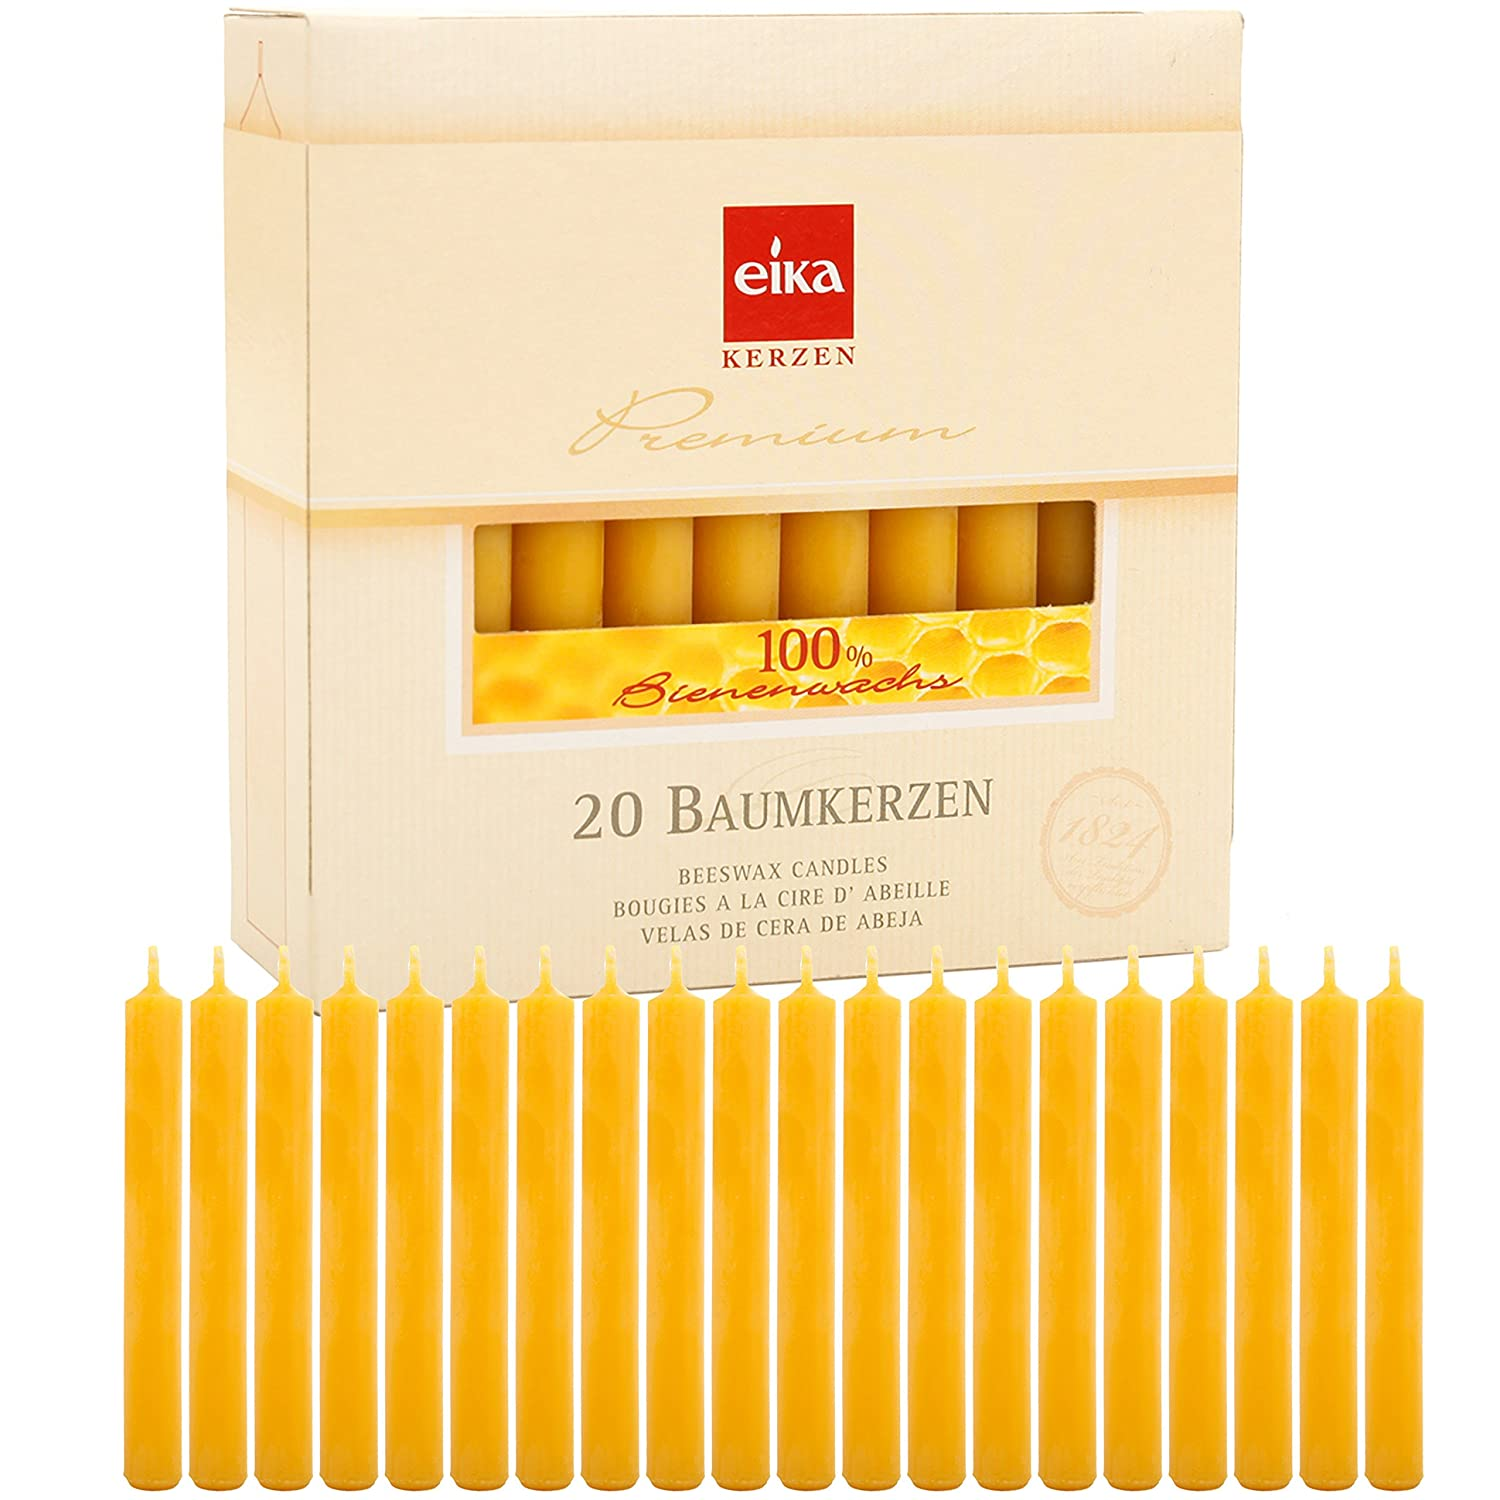 Brubaker By Eika Box of 20 Finest Beeswax Tree Candles Honey Yellow 100% Beeswax High 10.5 Cms, ø 1.25 Cms Made in Germany Baumkerzen20erP_Bienen100Proz